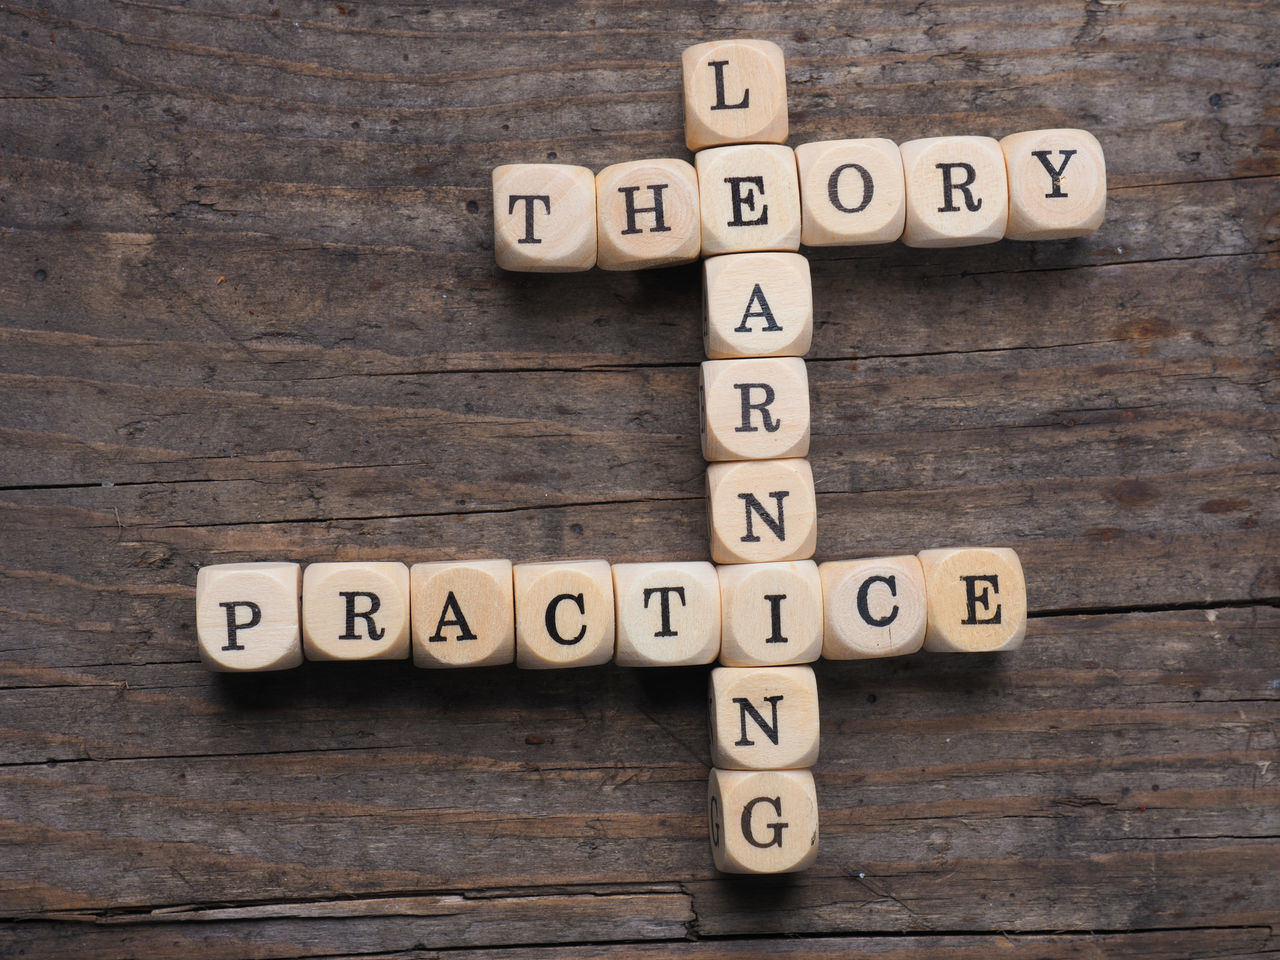 Theory and practice Alphabet Business Capital Letter Close-up Communication Concert Day Diminishing Perspective Indoors  Learning No People Number Practicing Single Word Spelling Studio Shot Table Text Theory Toy Block Wood - Material Wood Grain